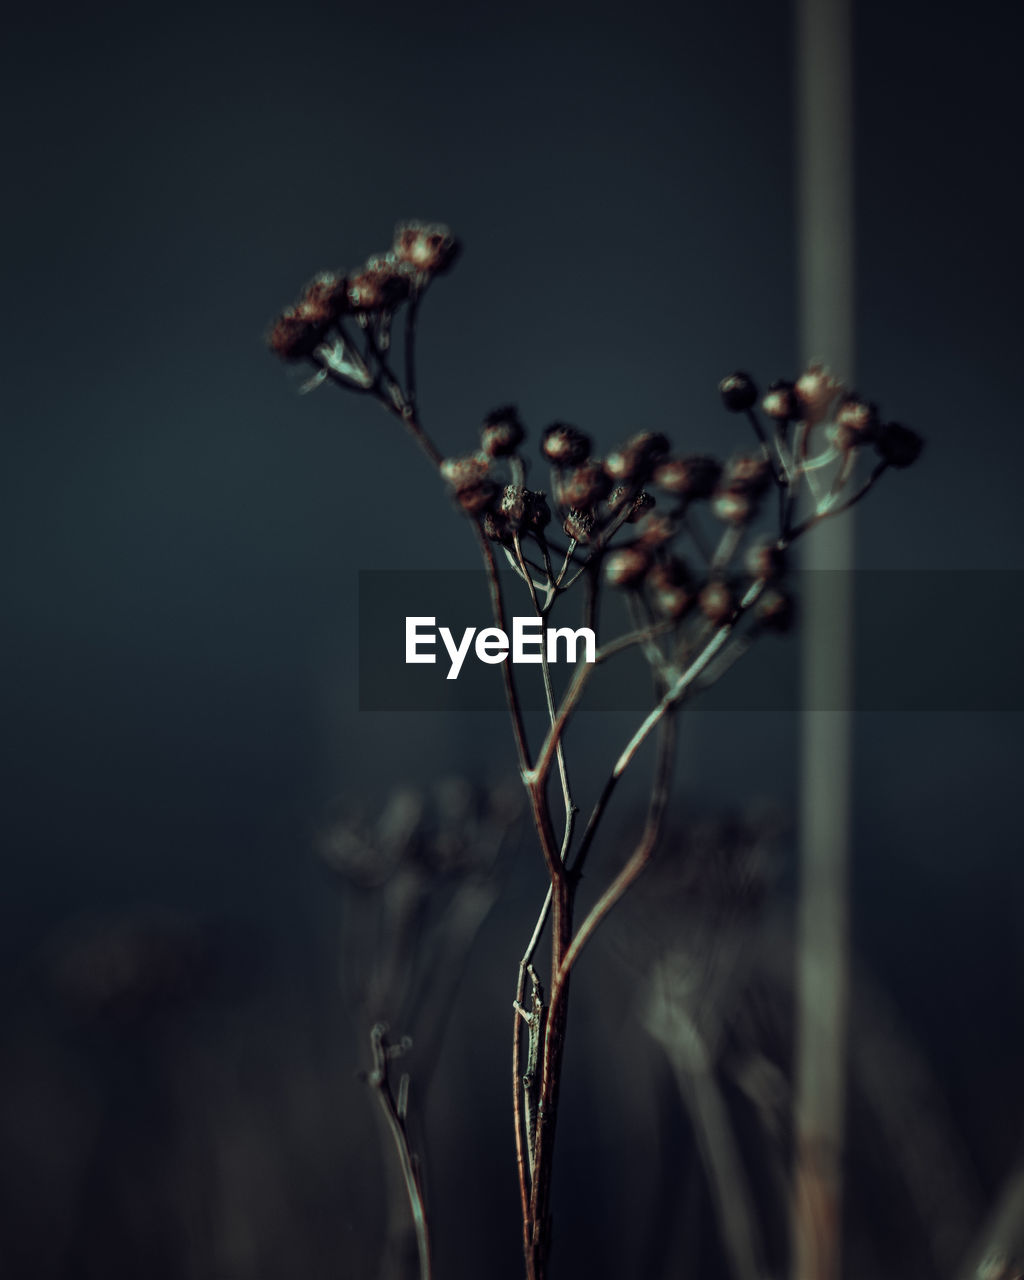 plant, close-up, focus on foreground, growth, no people, flower, dry, vulnerability, beauty in nature, plant stem, nature, selective focus, fragility, flowering plant, day, tranquility, outdoors, dried plant, bud, dead plant, wilted plant, dried